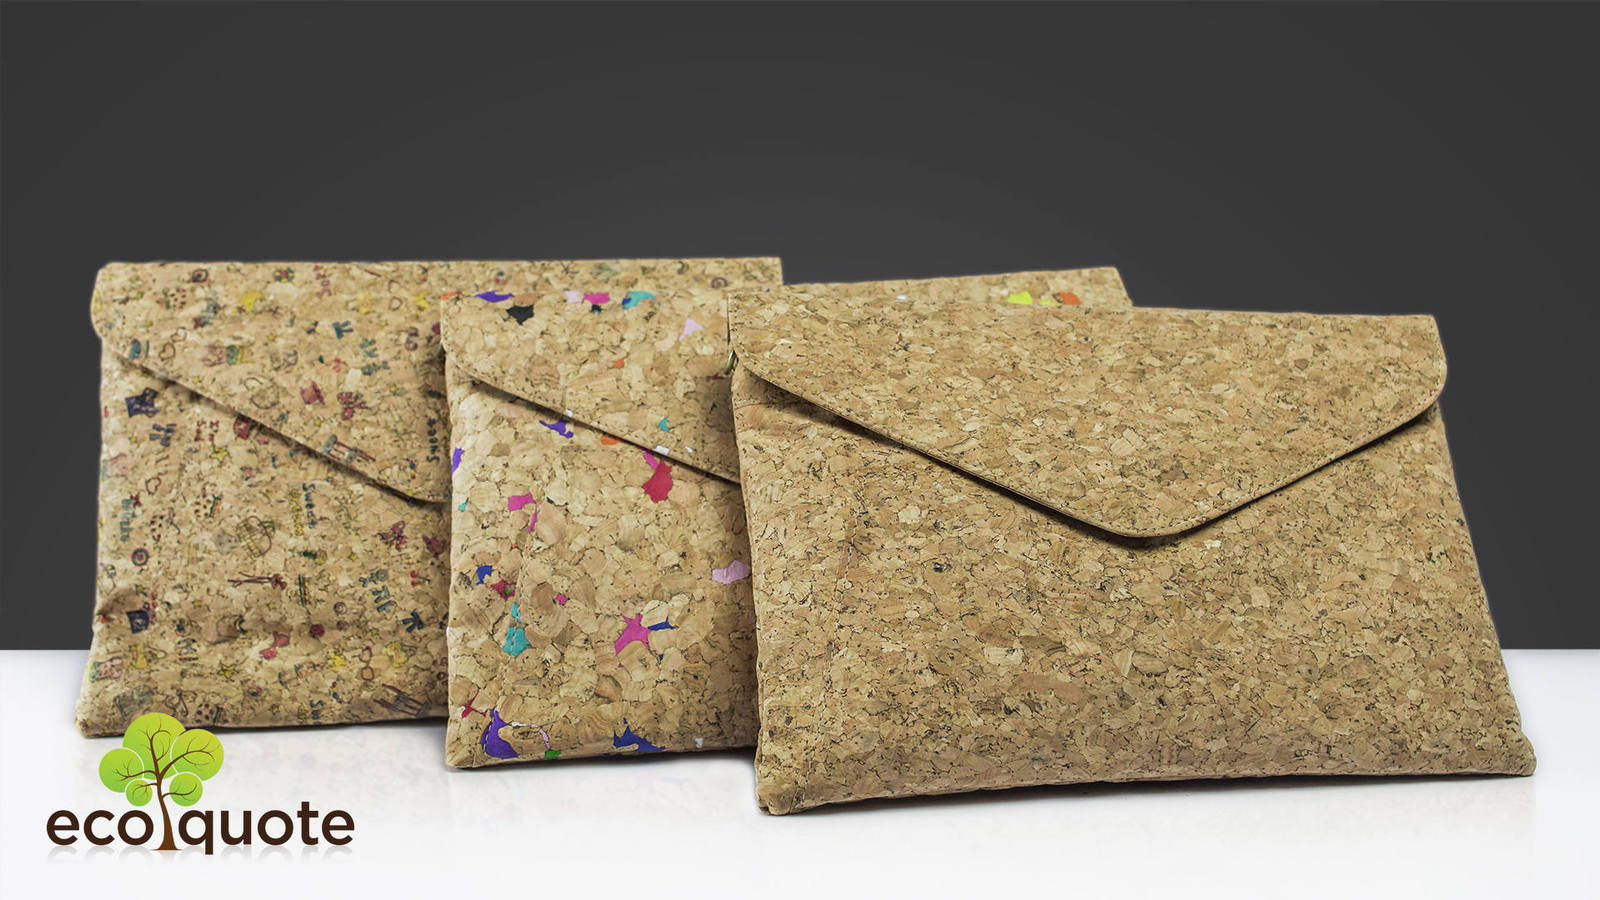 EcoQuote Envelope Design Sling Bag Handmade Cork Eco Friendly Material For Vegan